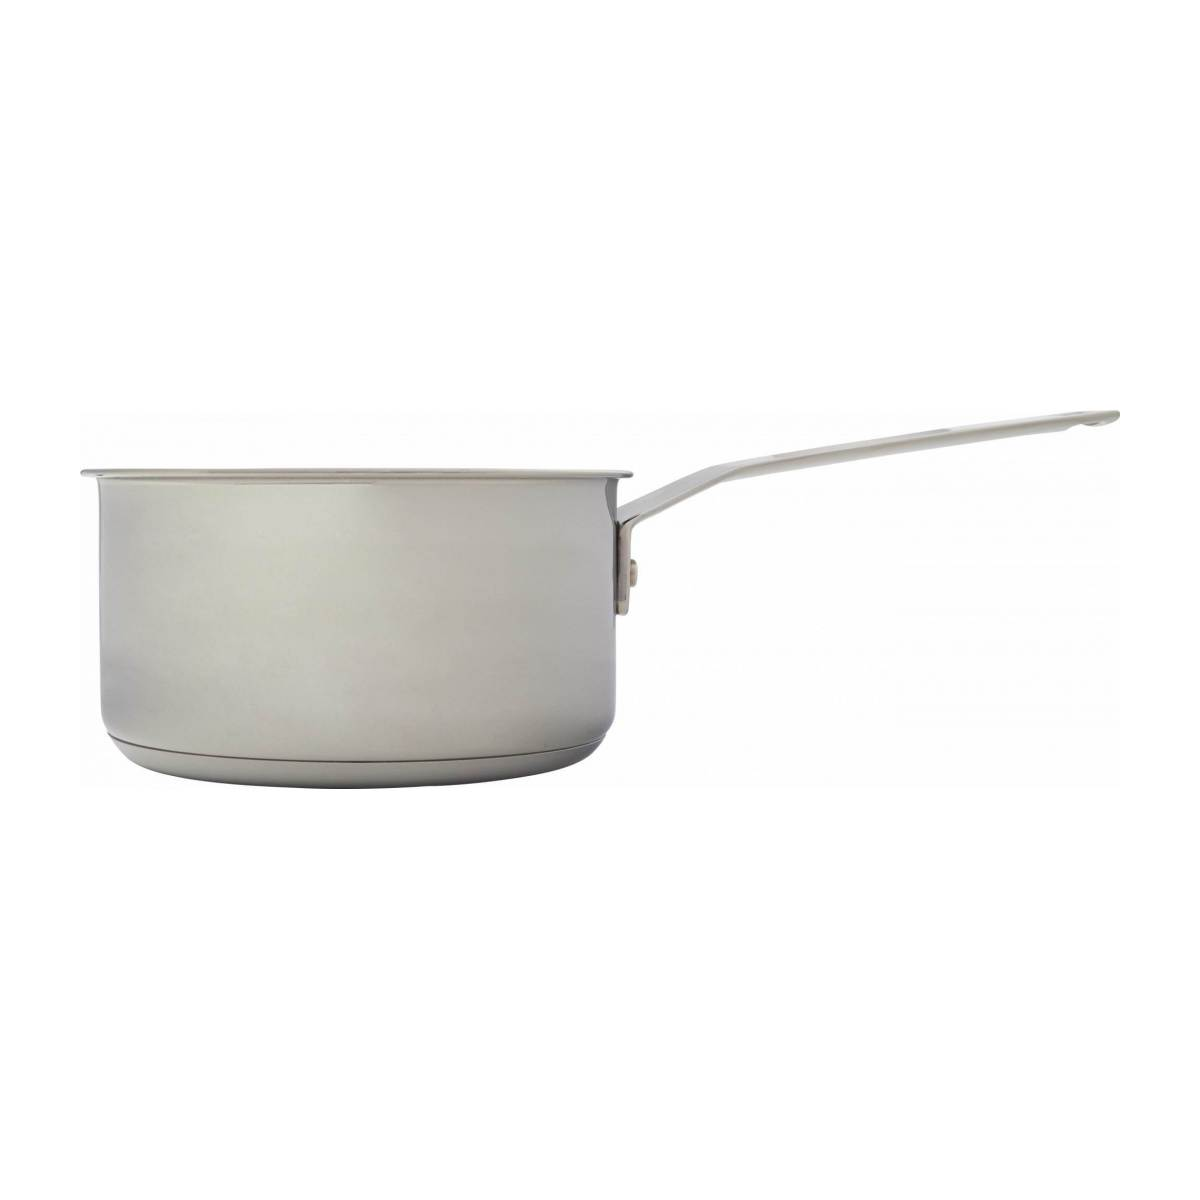 Saucepan 20 cm in stainless steel n°2